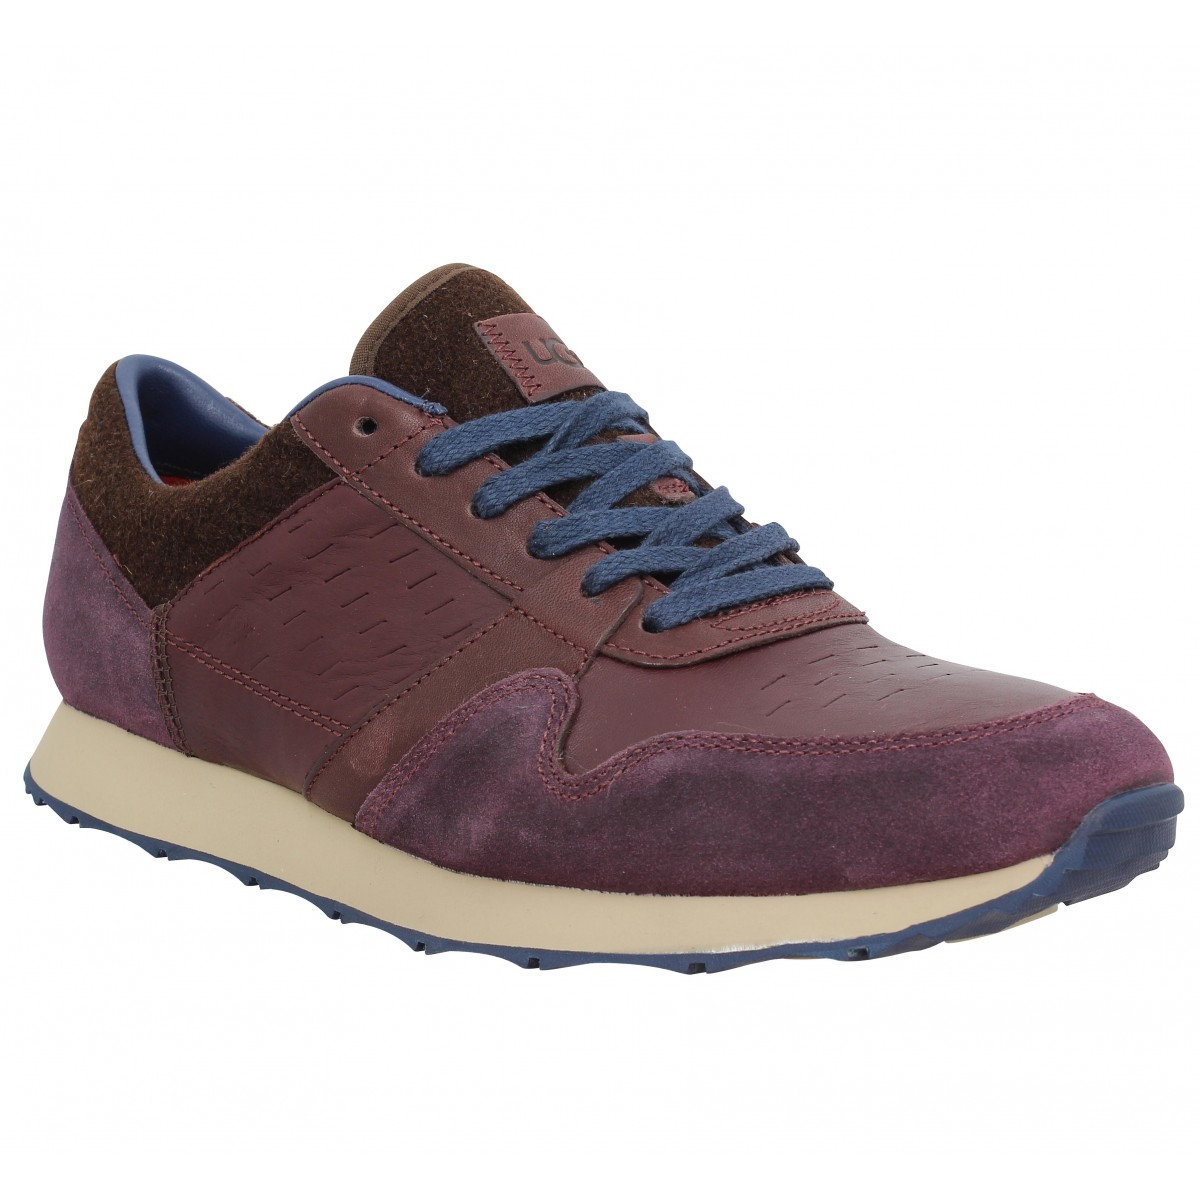 Baskets UGG Trigo cuir velours Homme Bordeaux